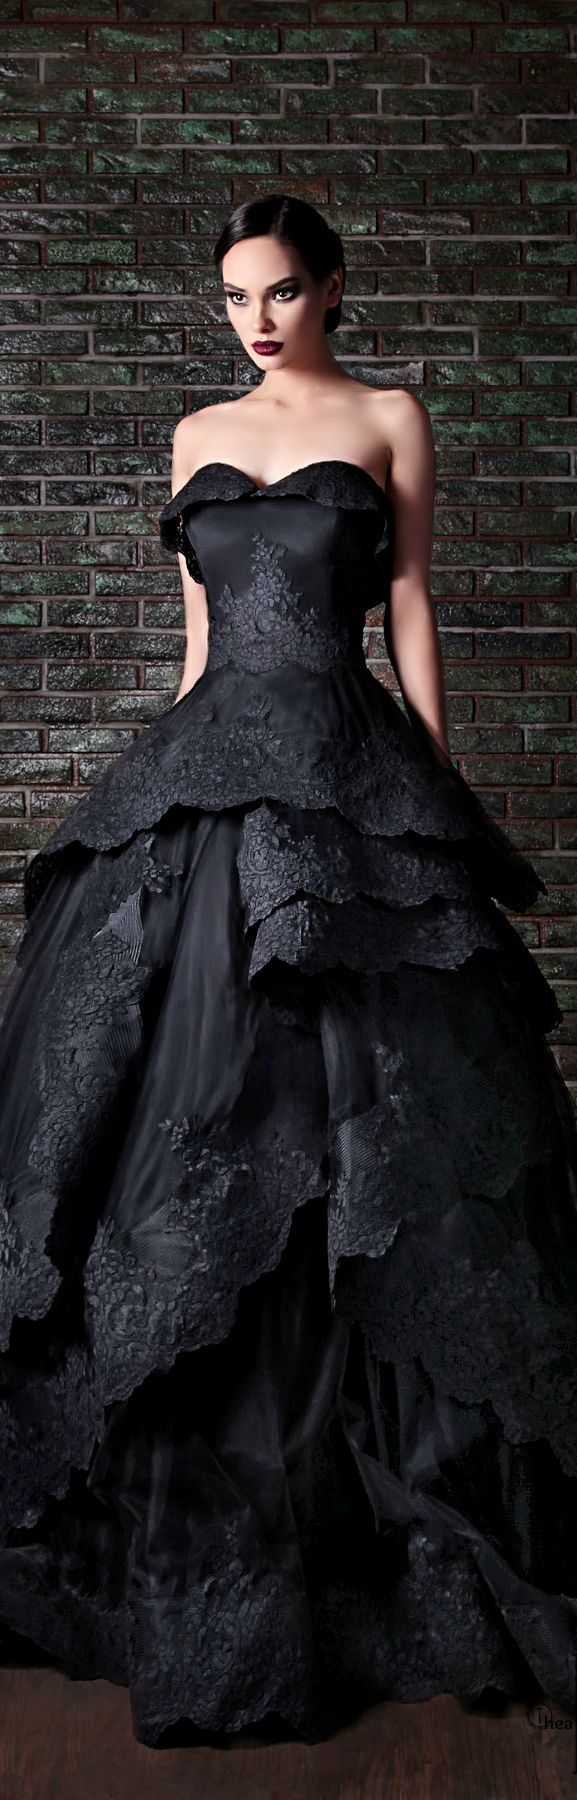 rami kadi couture 2014 - If i ever got to wear this dress i'd die because life could never be better.